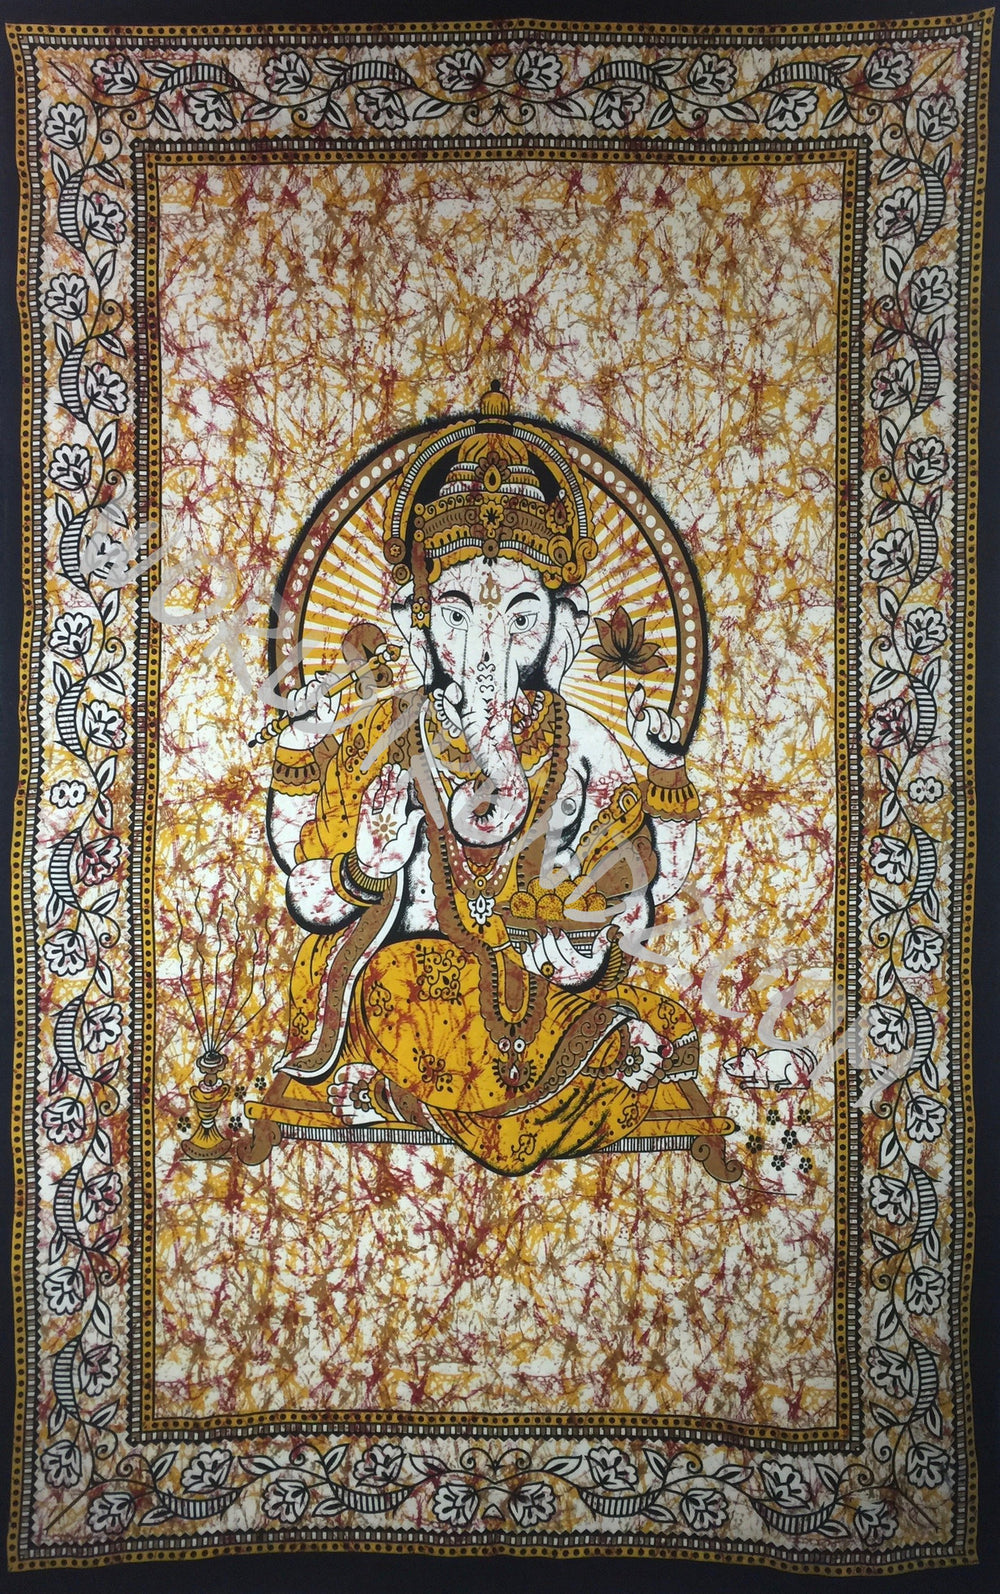 GANESHA TRADITIONAL TAPESTRY YELLOW BATIK